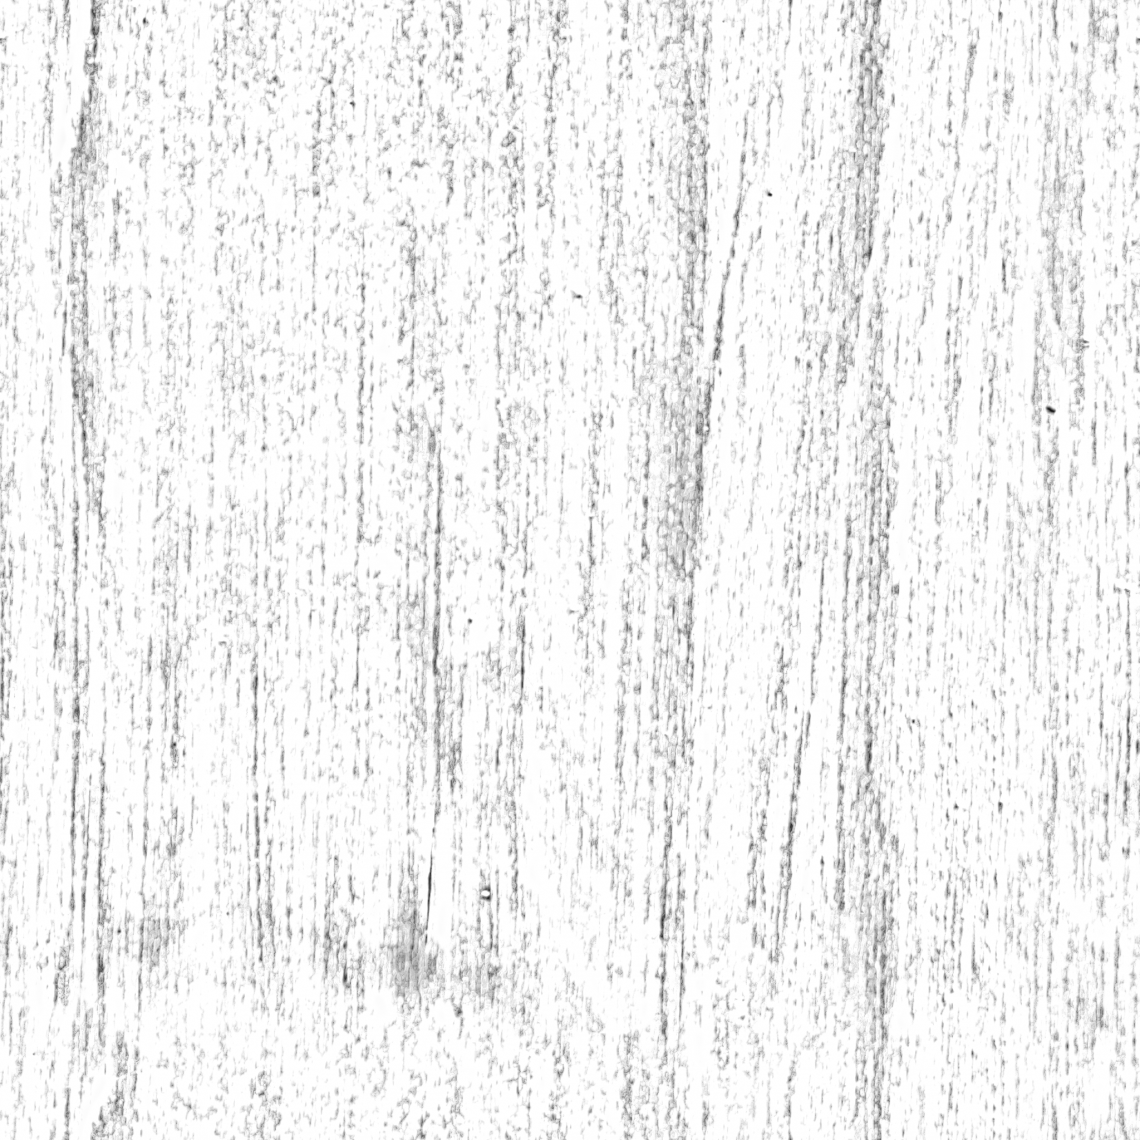 Wood-Plain-03-Ambient-Occlusion